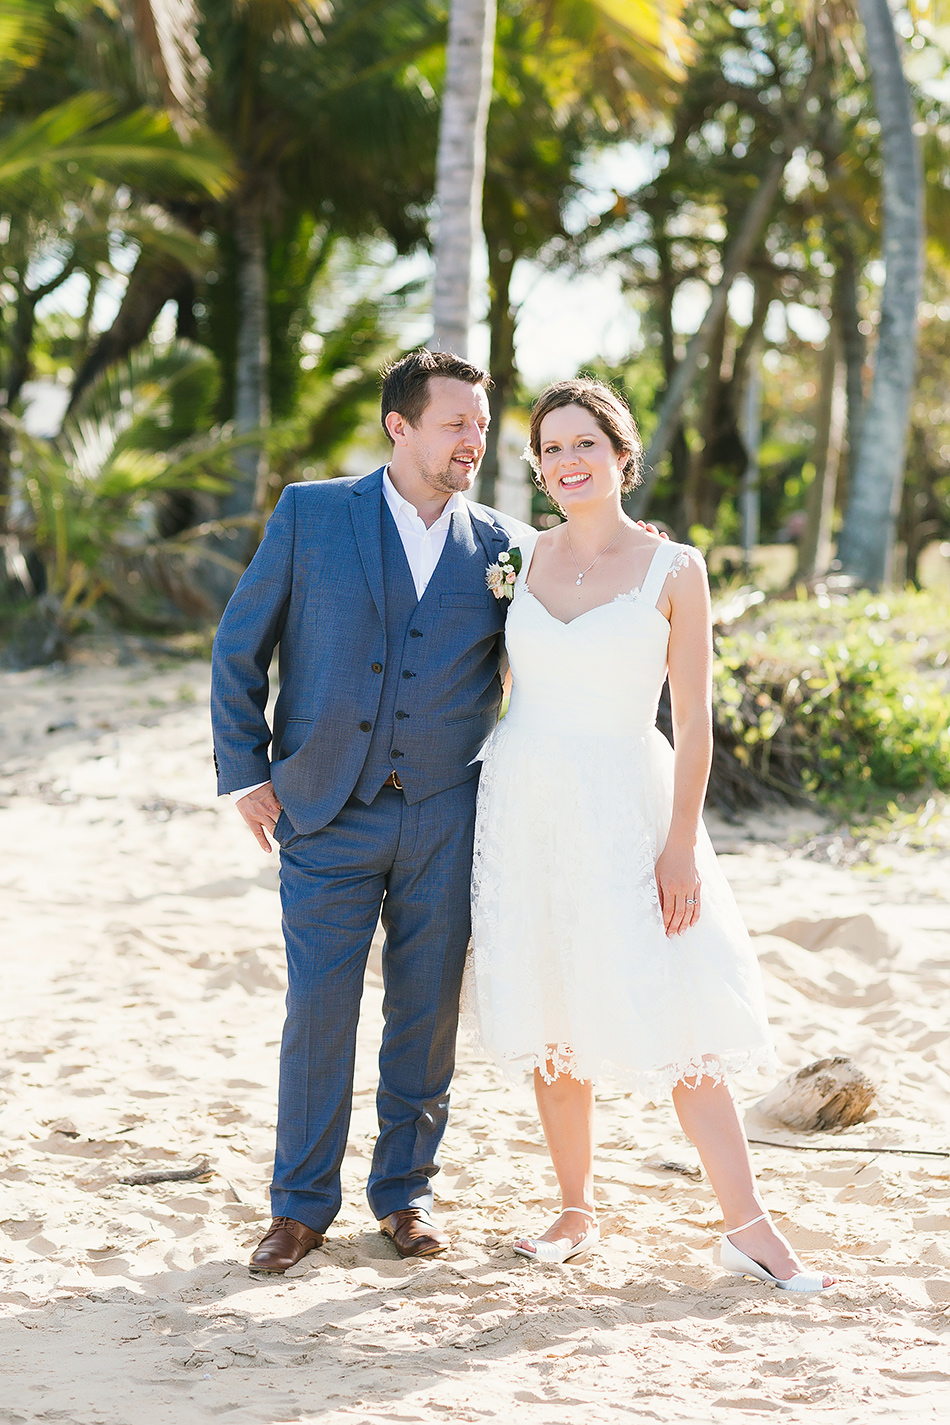 mission beach wedding photography brisbane wedding photographer